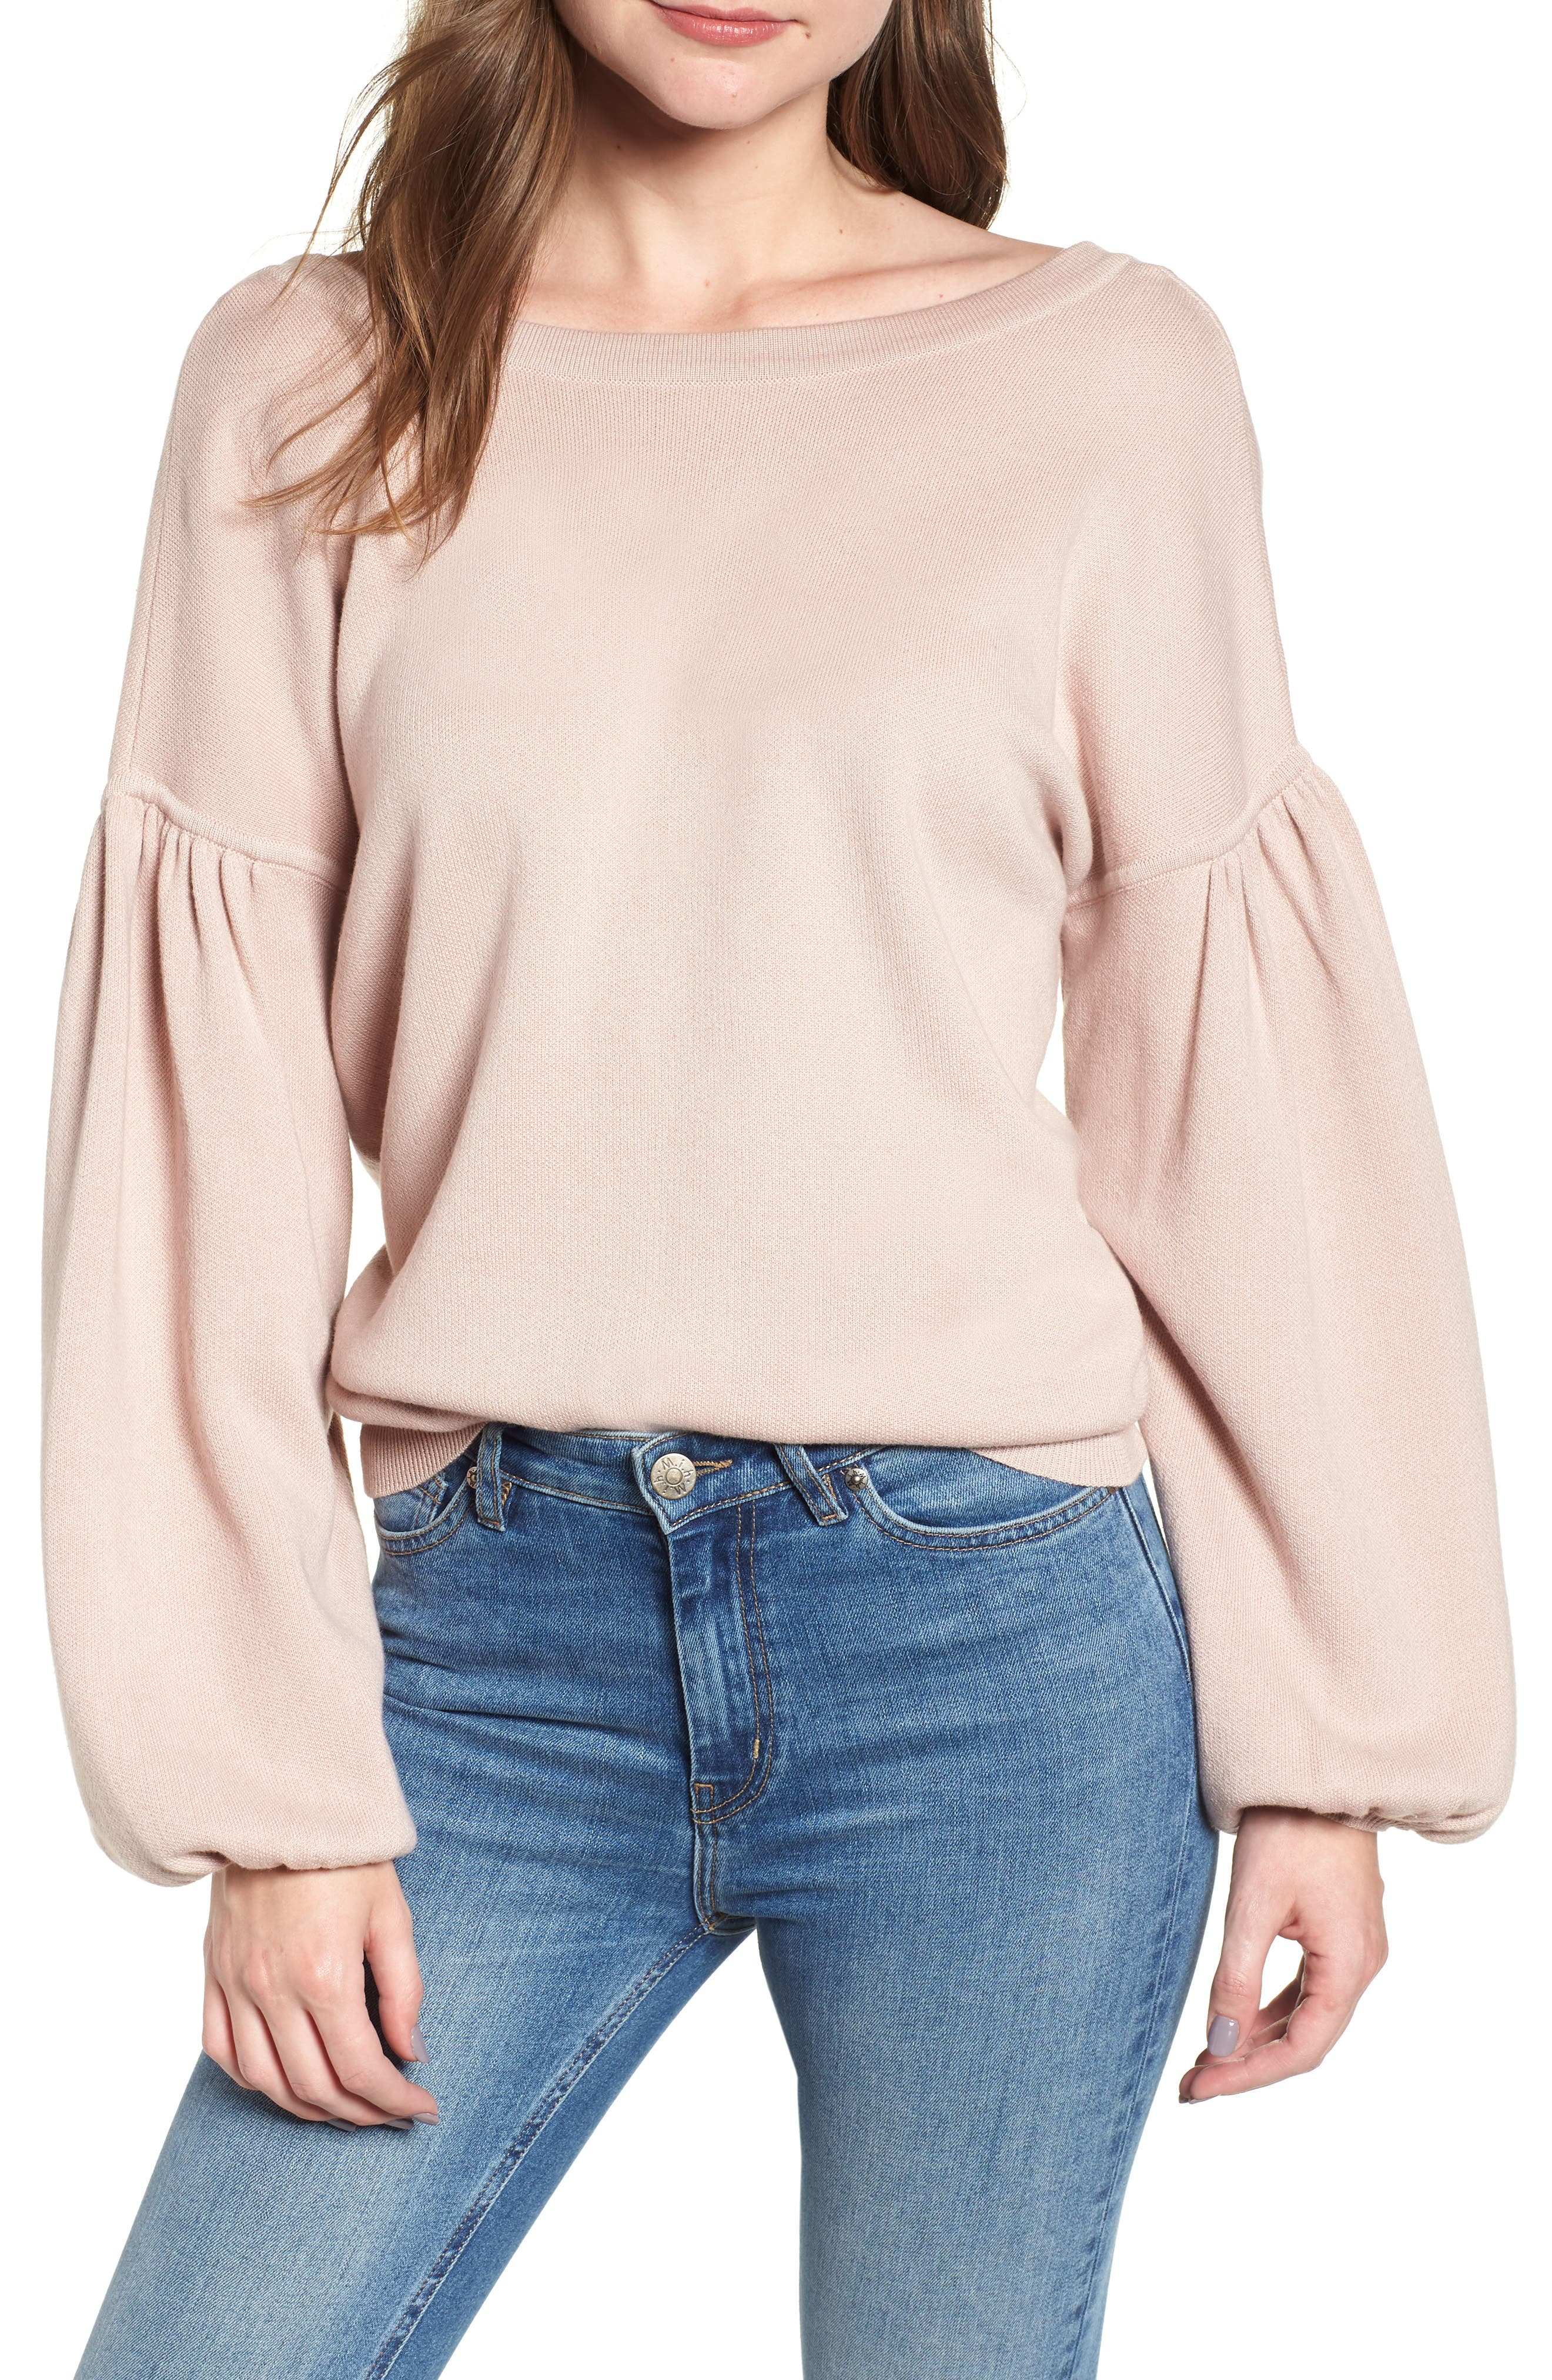 Bishop + Young Hailey Balloon Sleeve Sweater,                         Main,                         color, QUARTZ